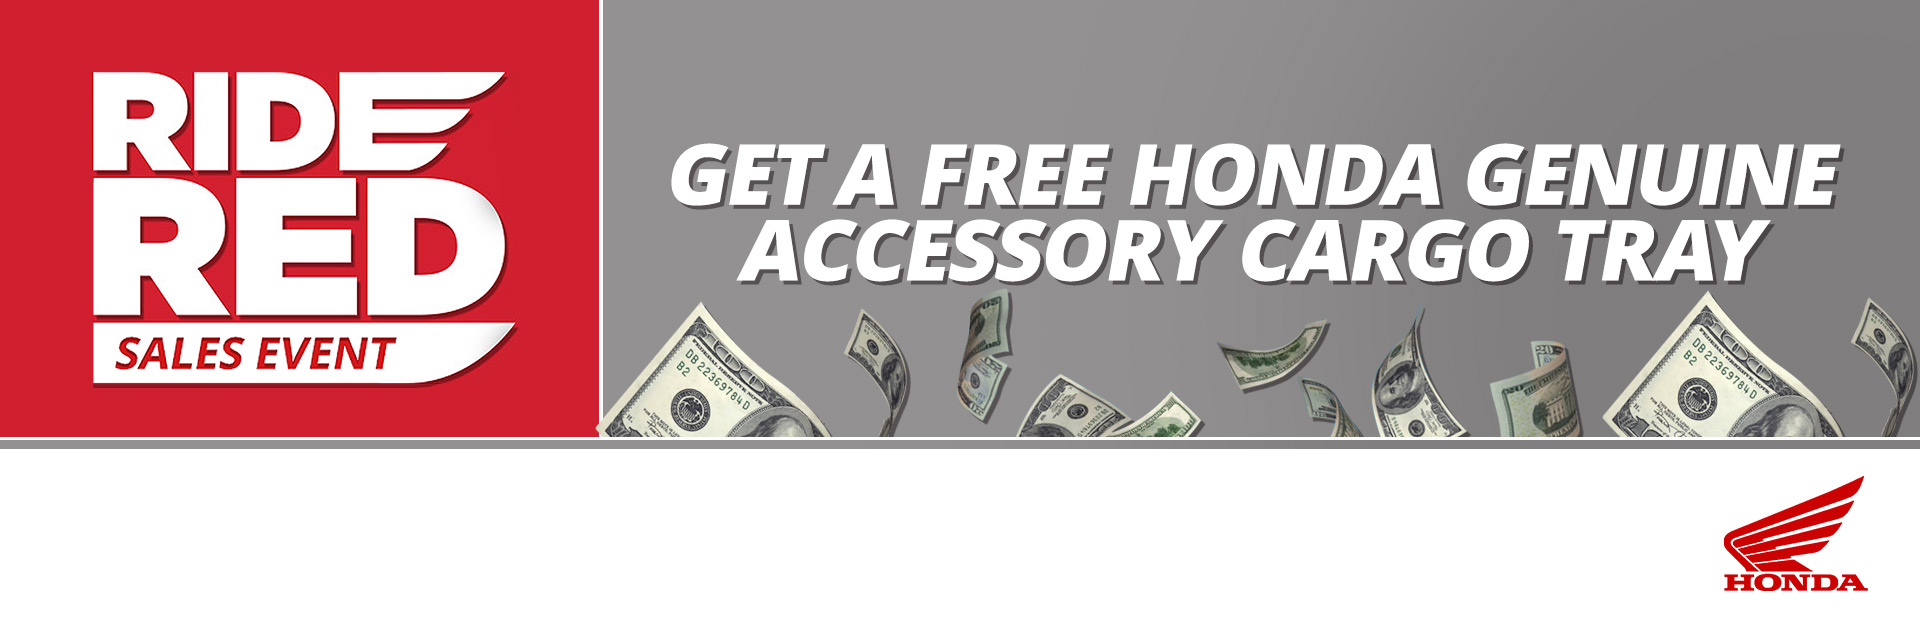 Get a Free Honda Genuine Accessory Cargo Tray